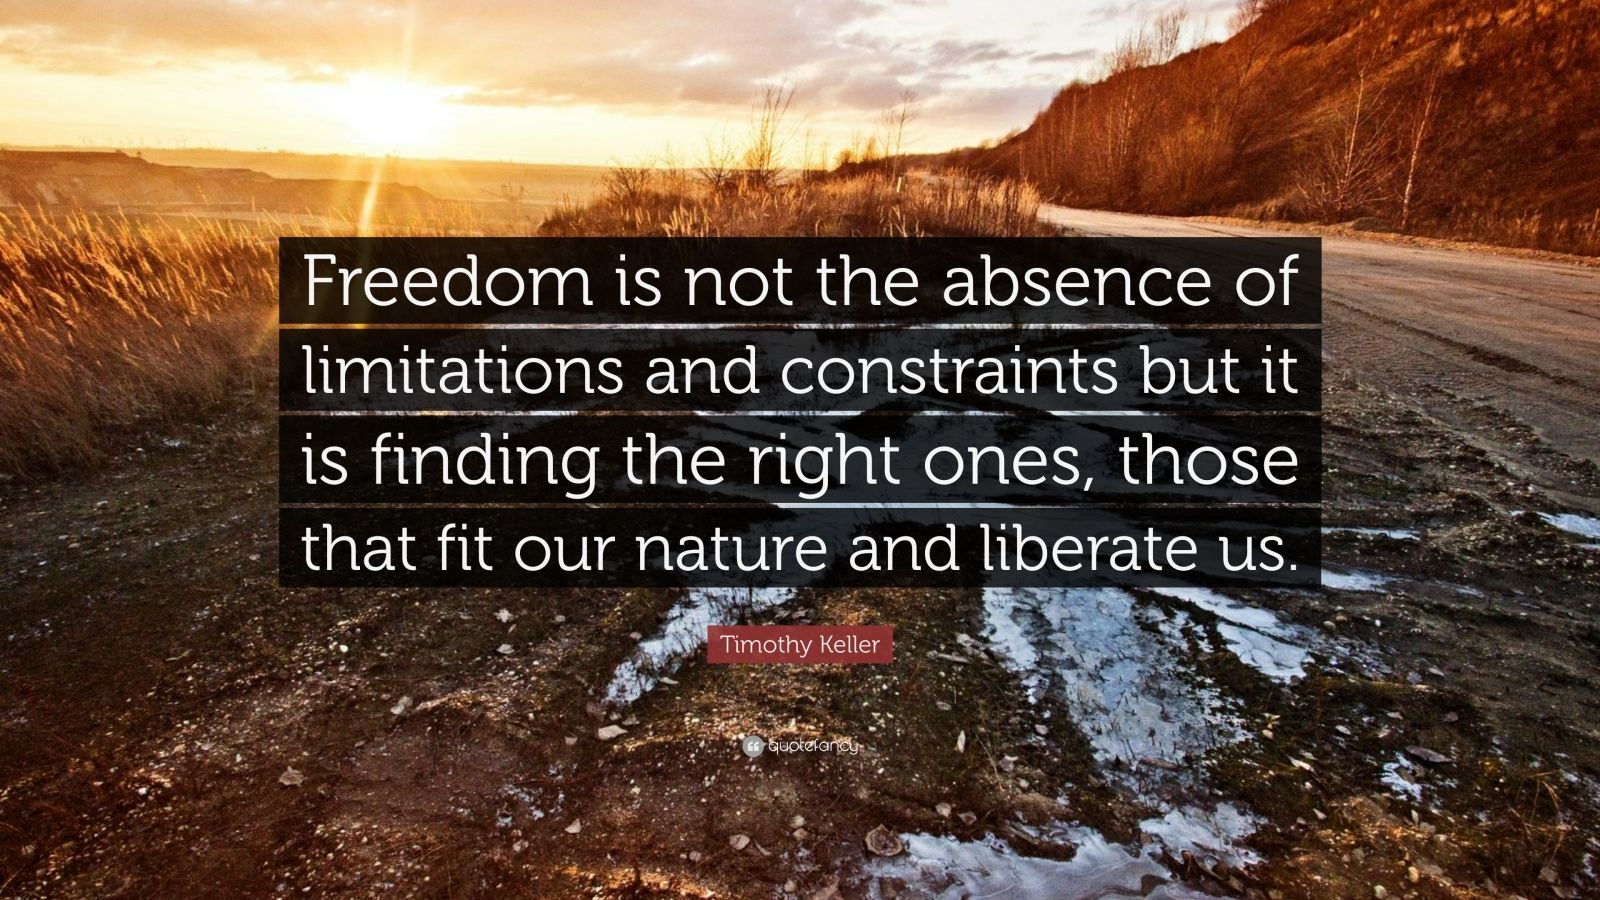 """Timothy Keller Quote: """"Freedom is not the absence of limitations and constraints but it is finding the right ones, those that fit our nature and liberate us."""""""